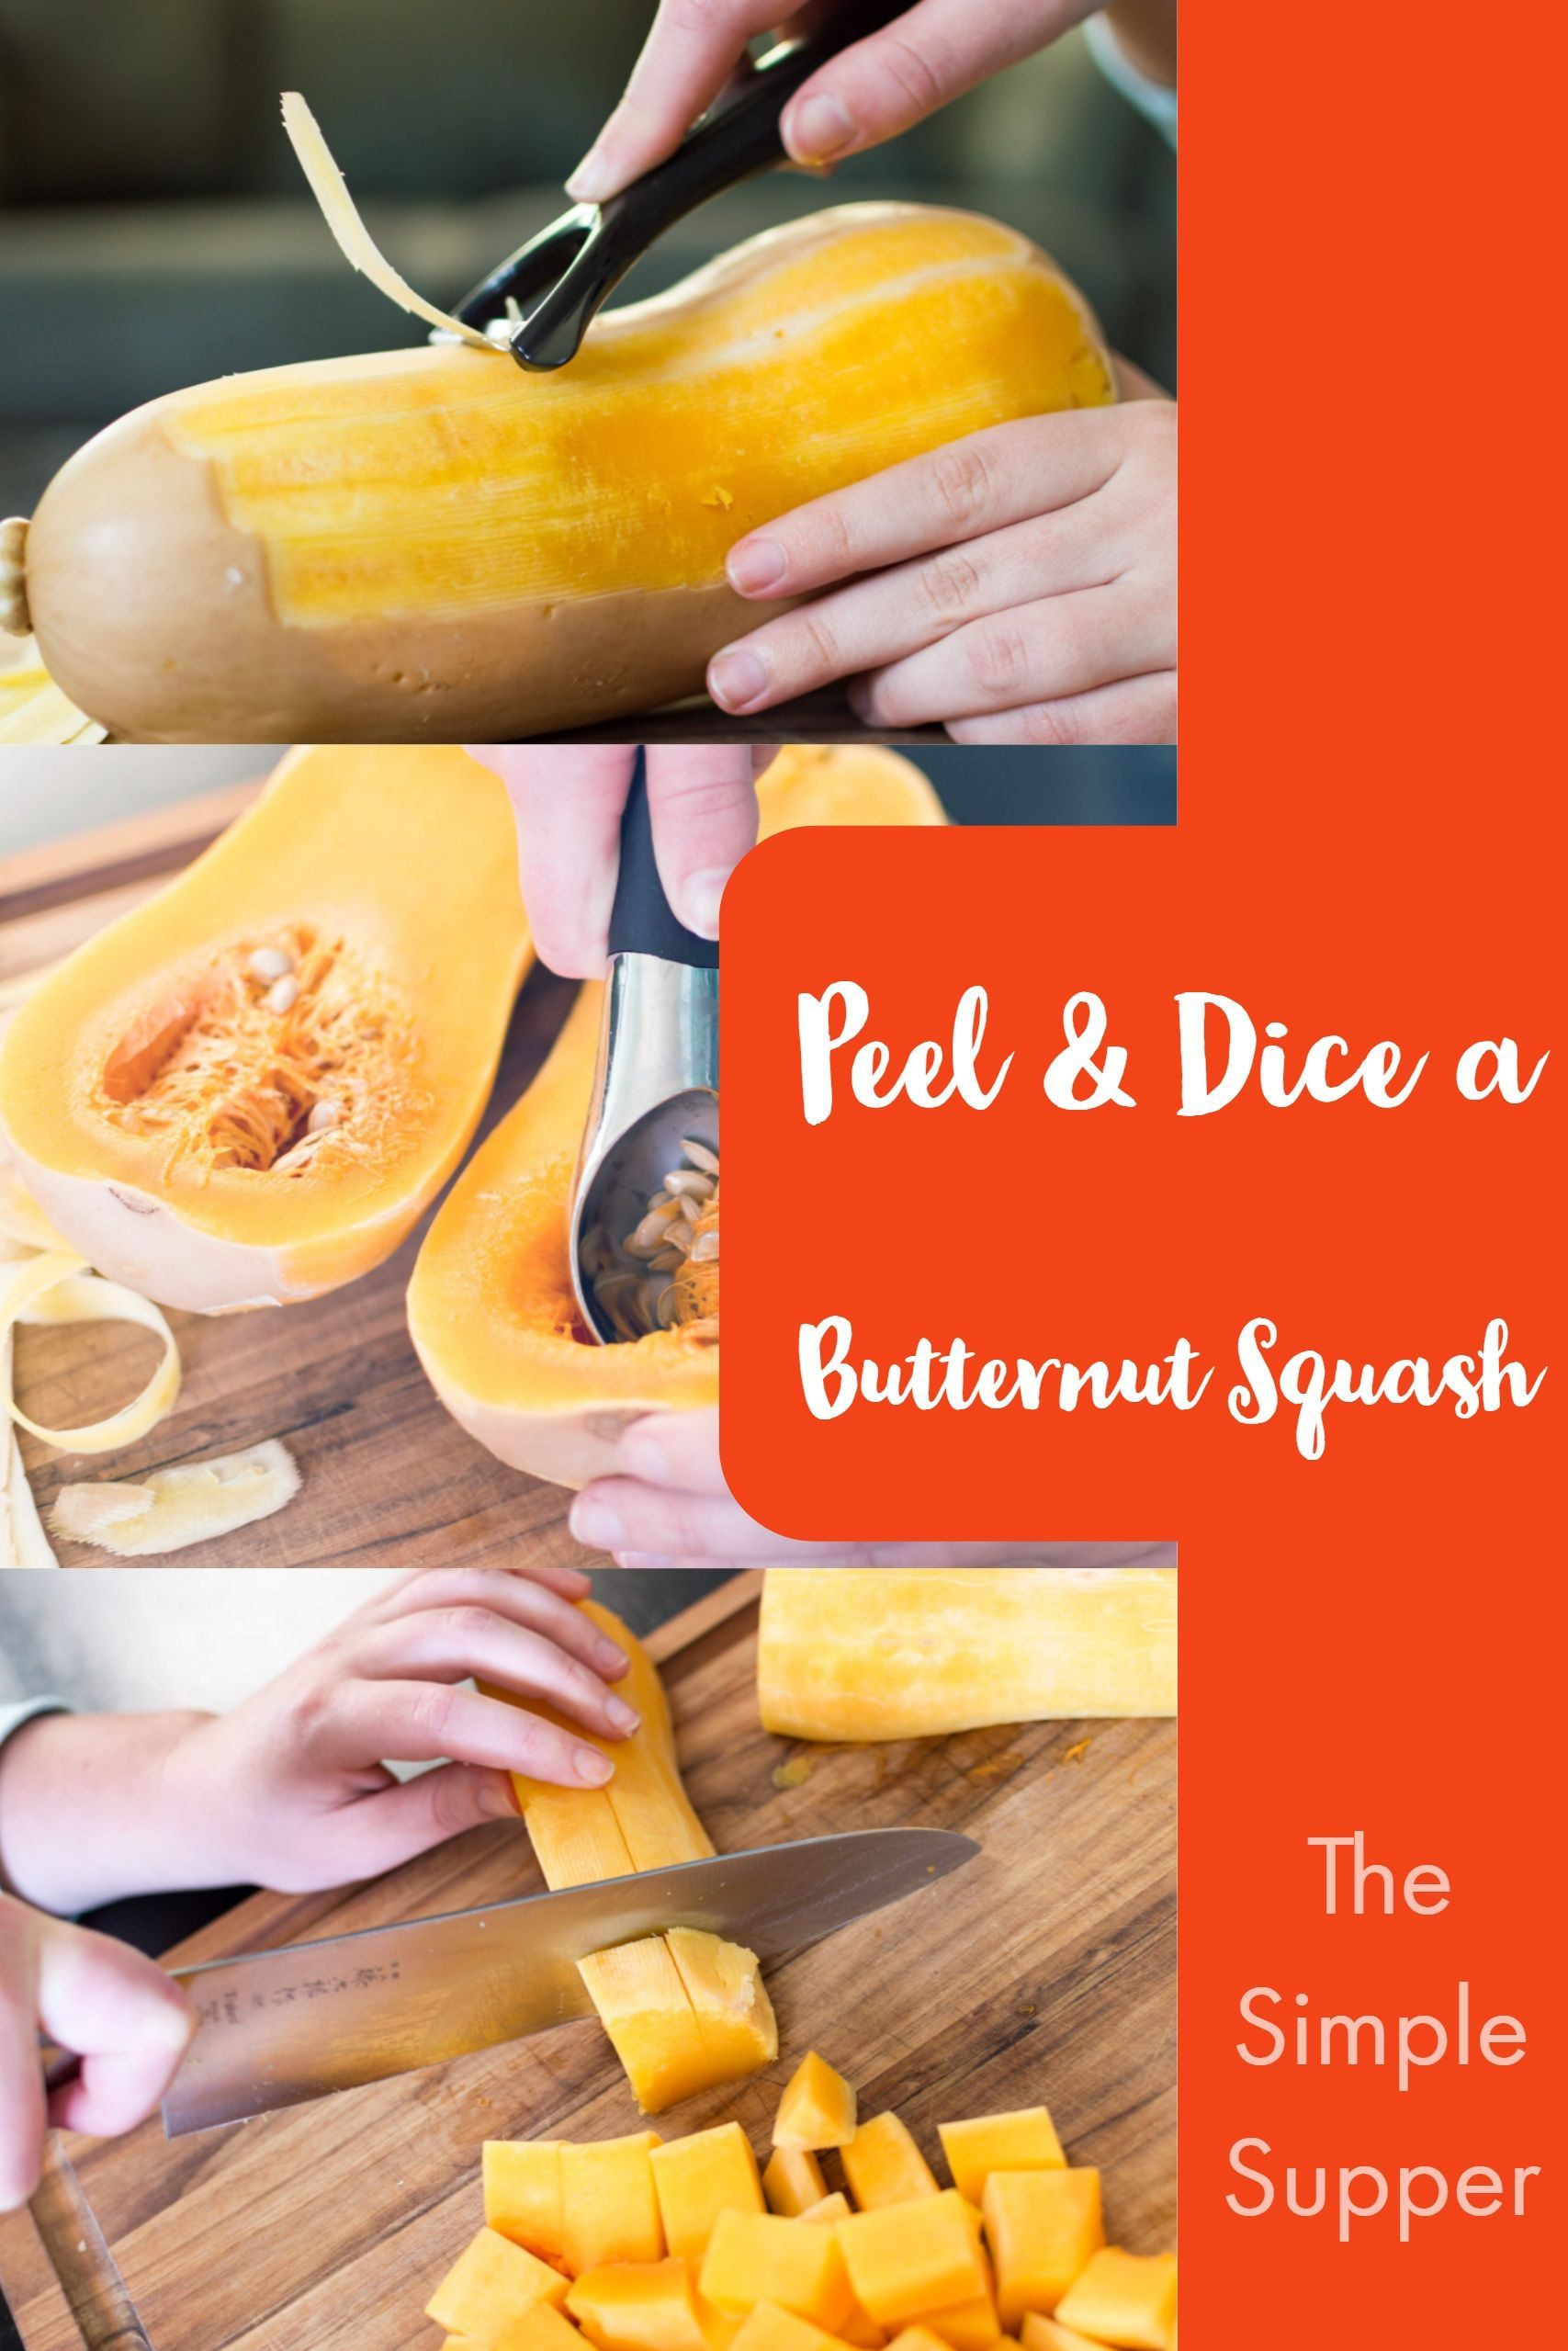 Cooking butternut squash great food with easy prep